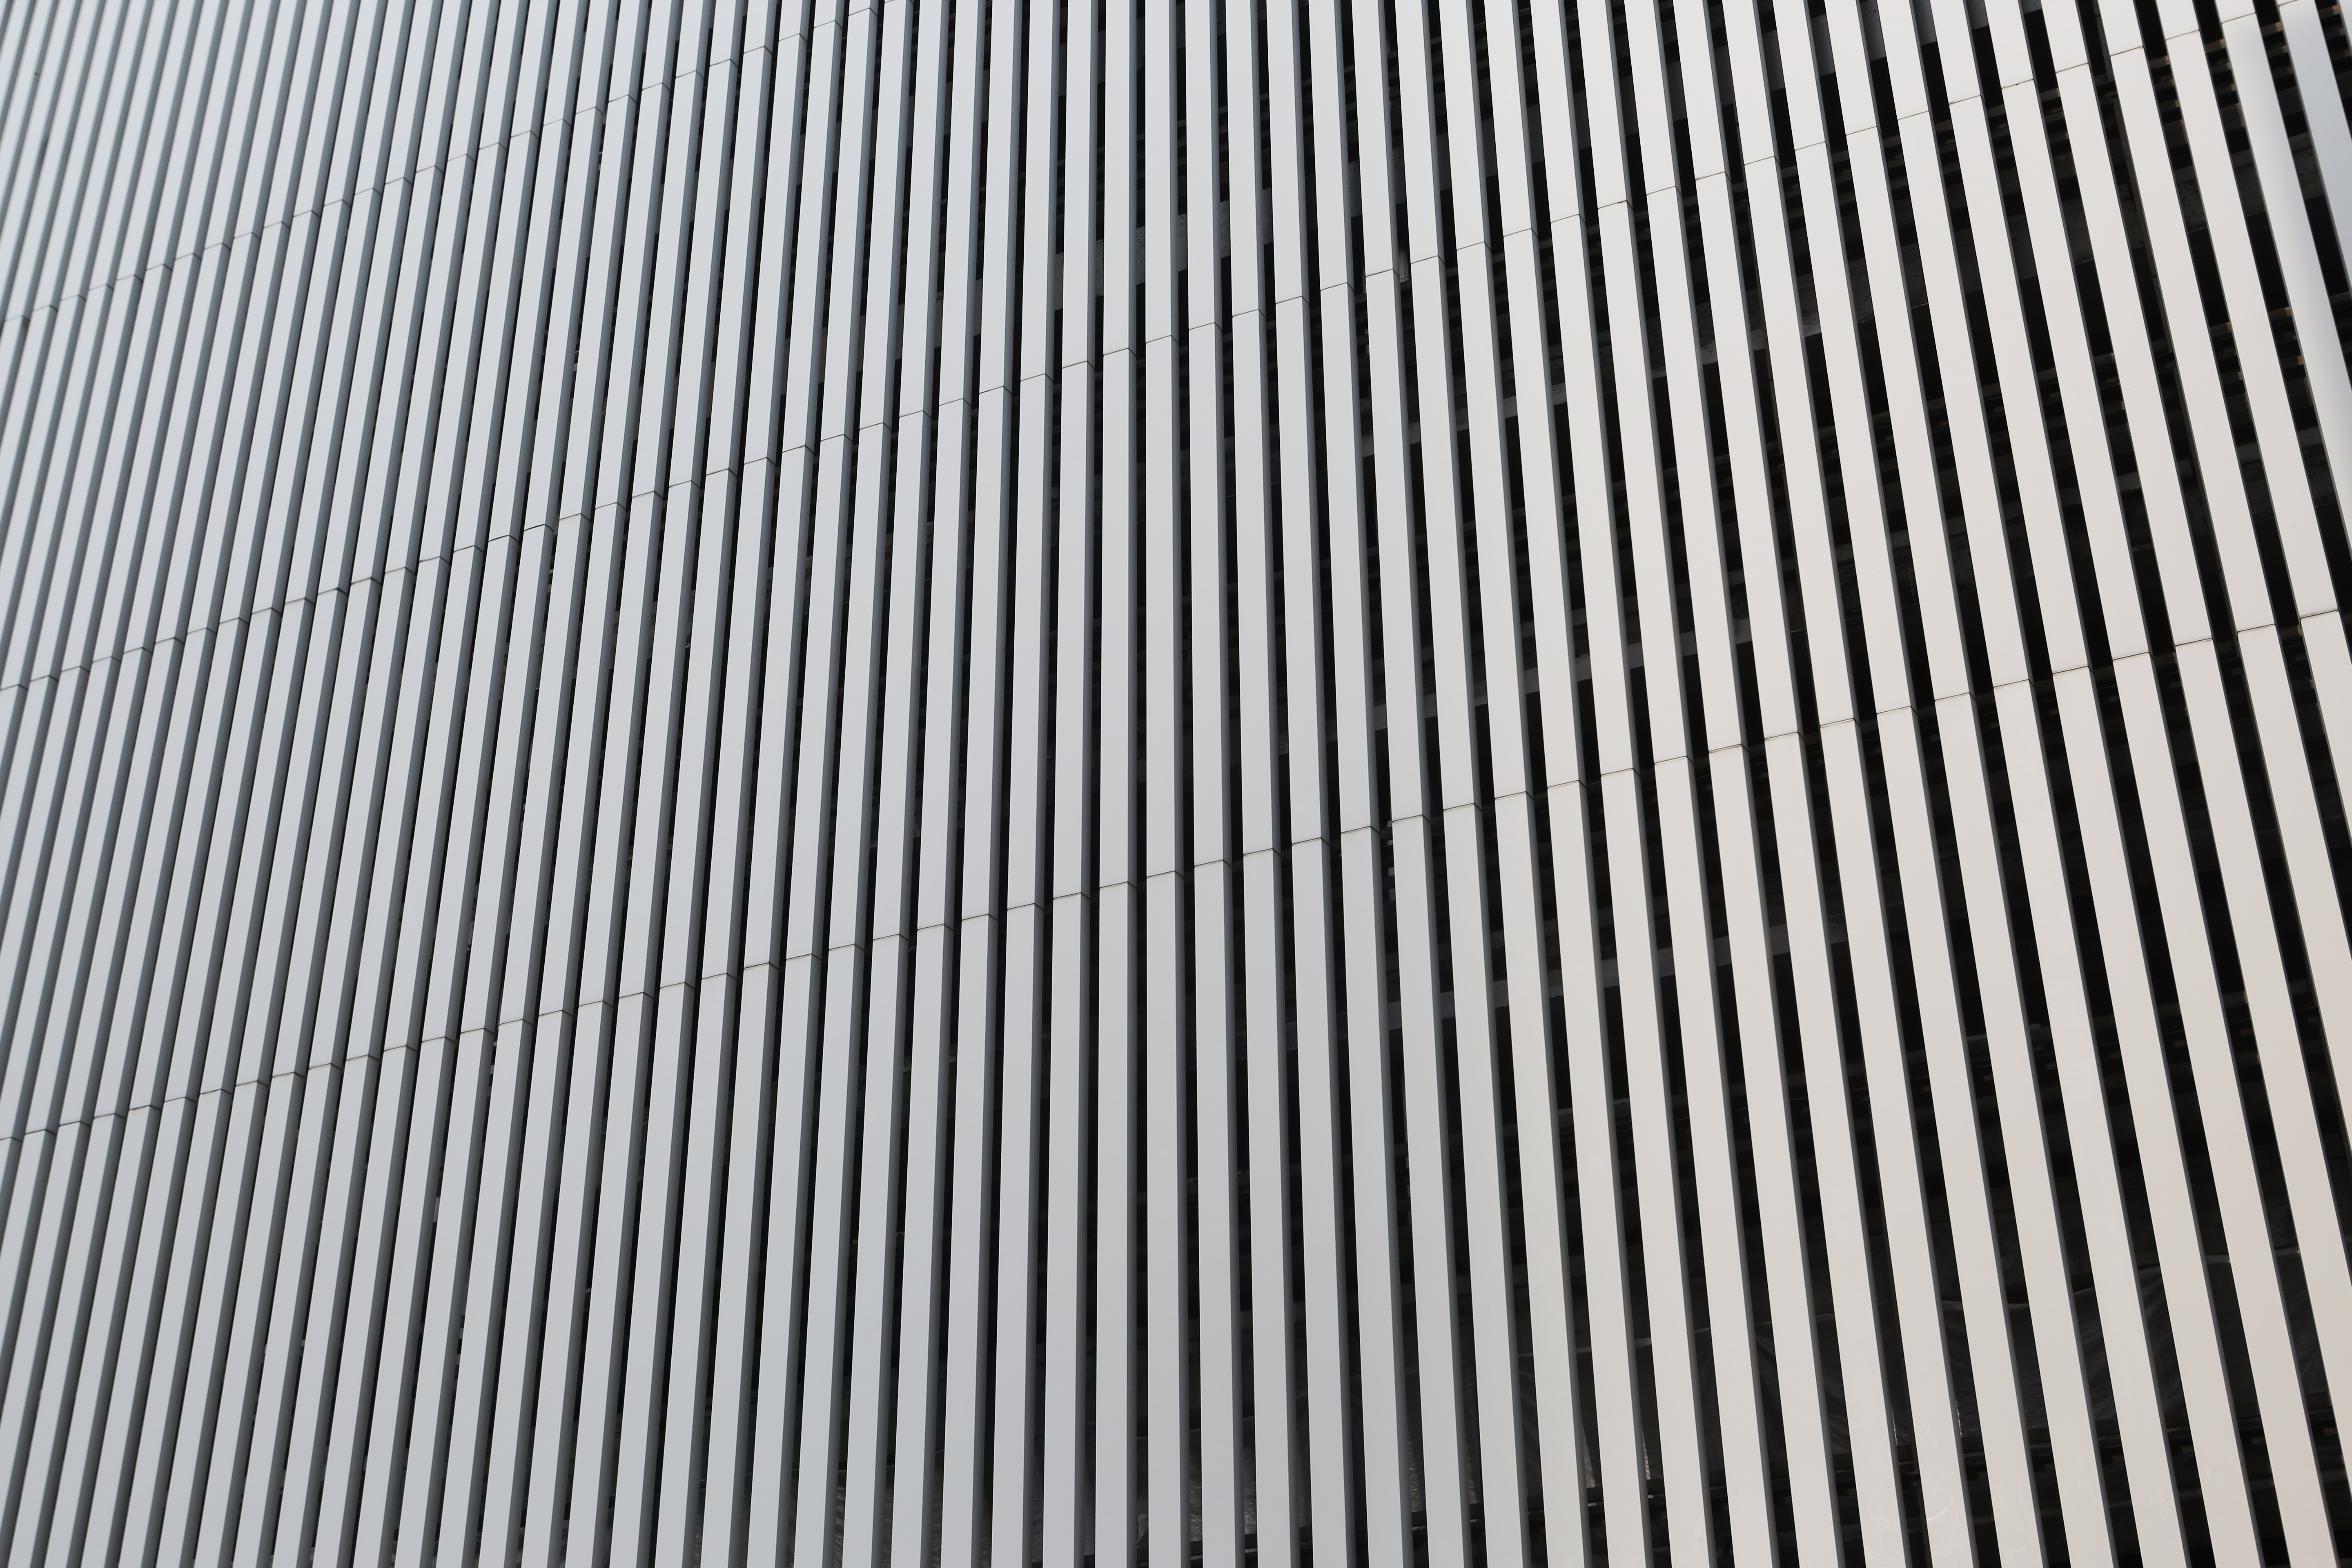 Architecture, Building, Lines, Texture, Wall, HQ Photo